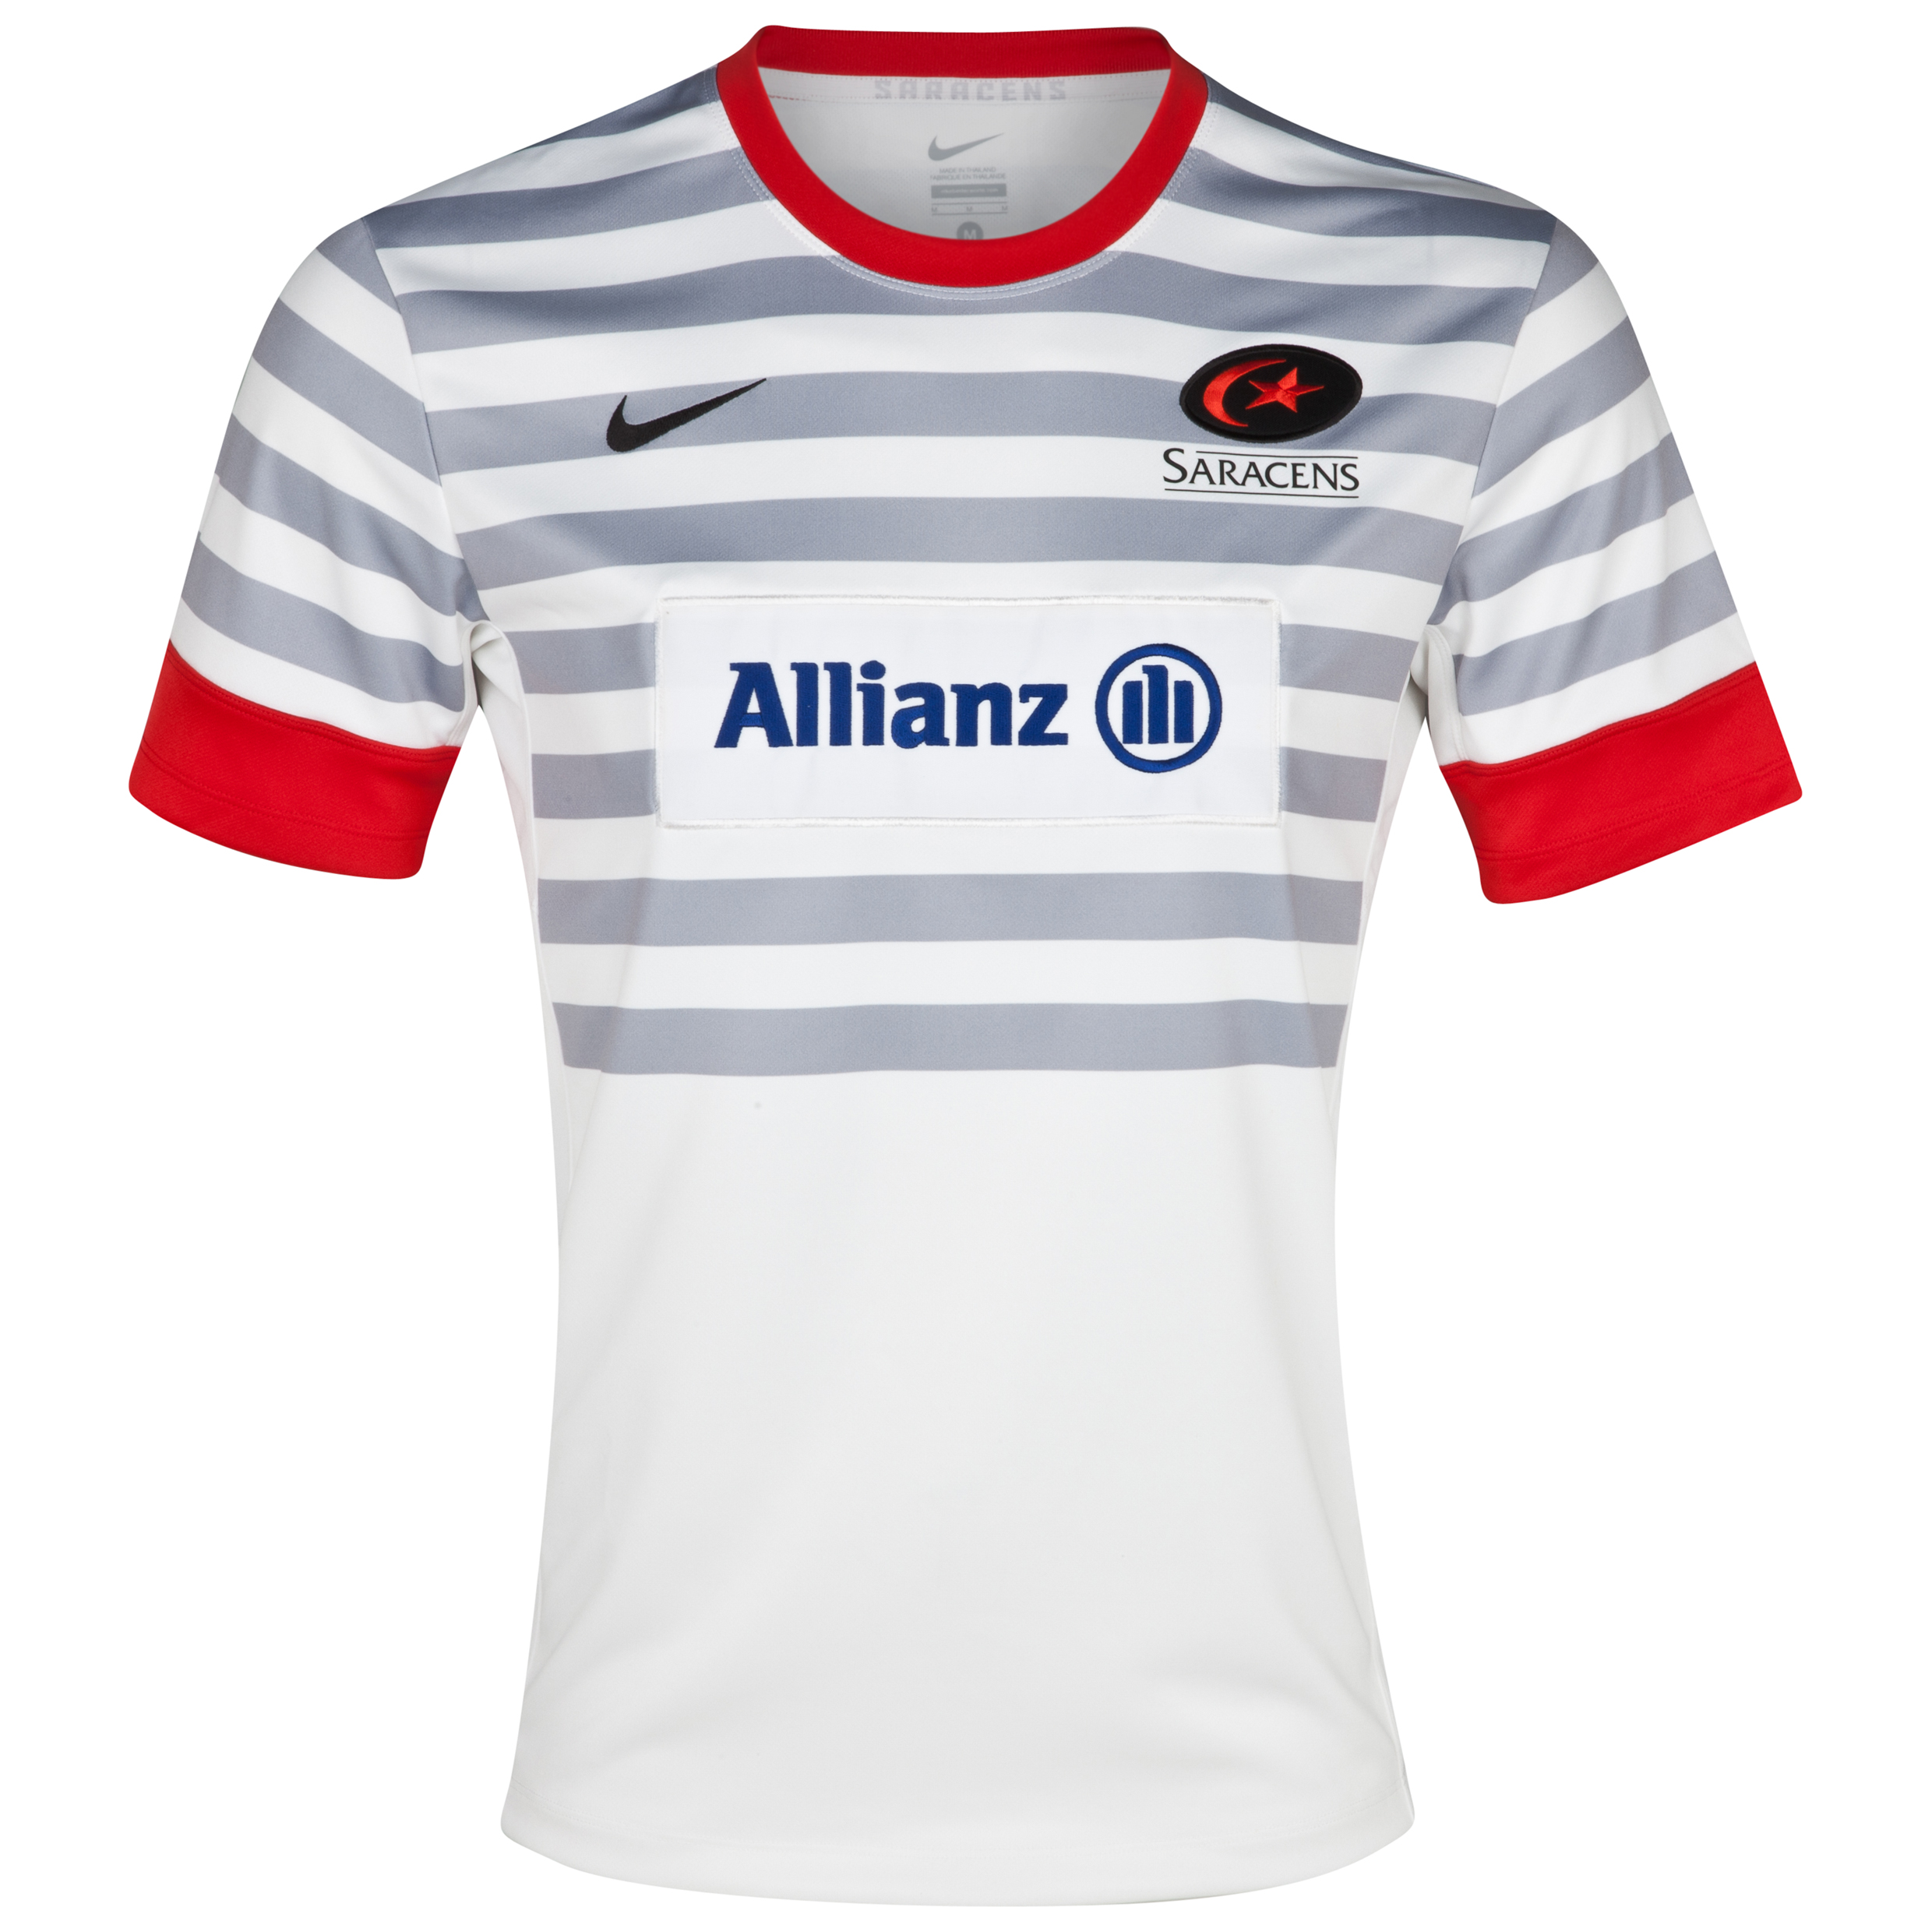 Saracens Away Replica Jersey 2012/13 - White/Wolf Grey/University Red/White